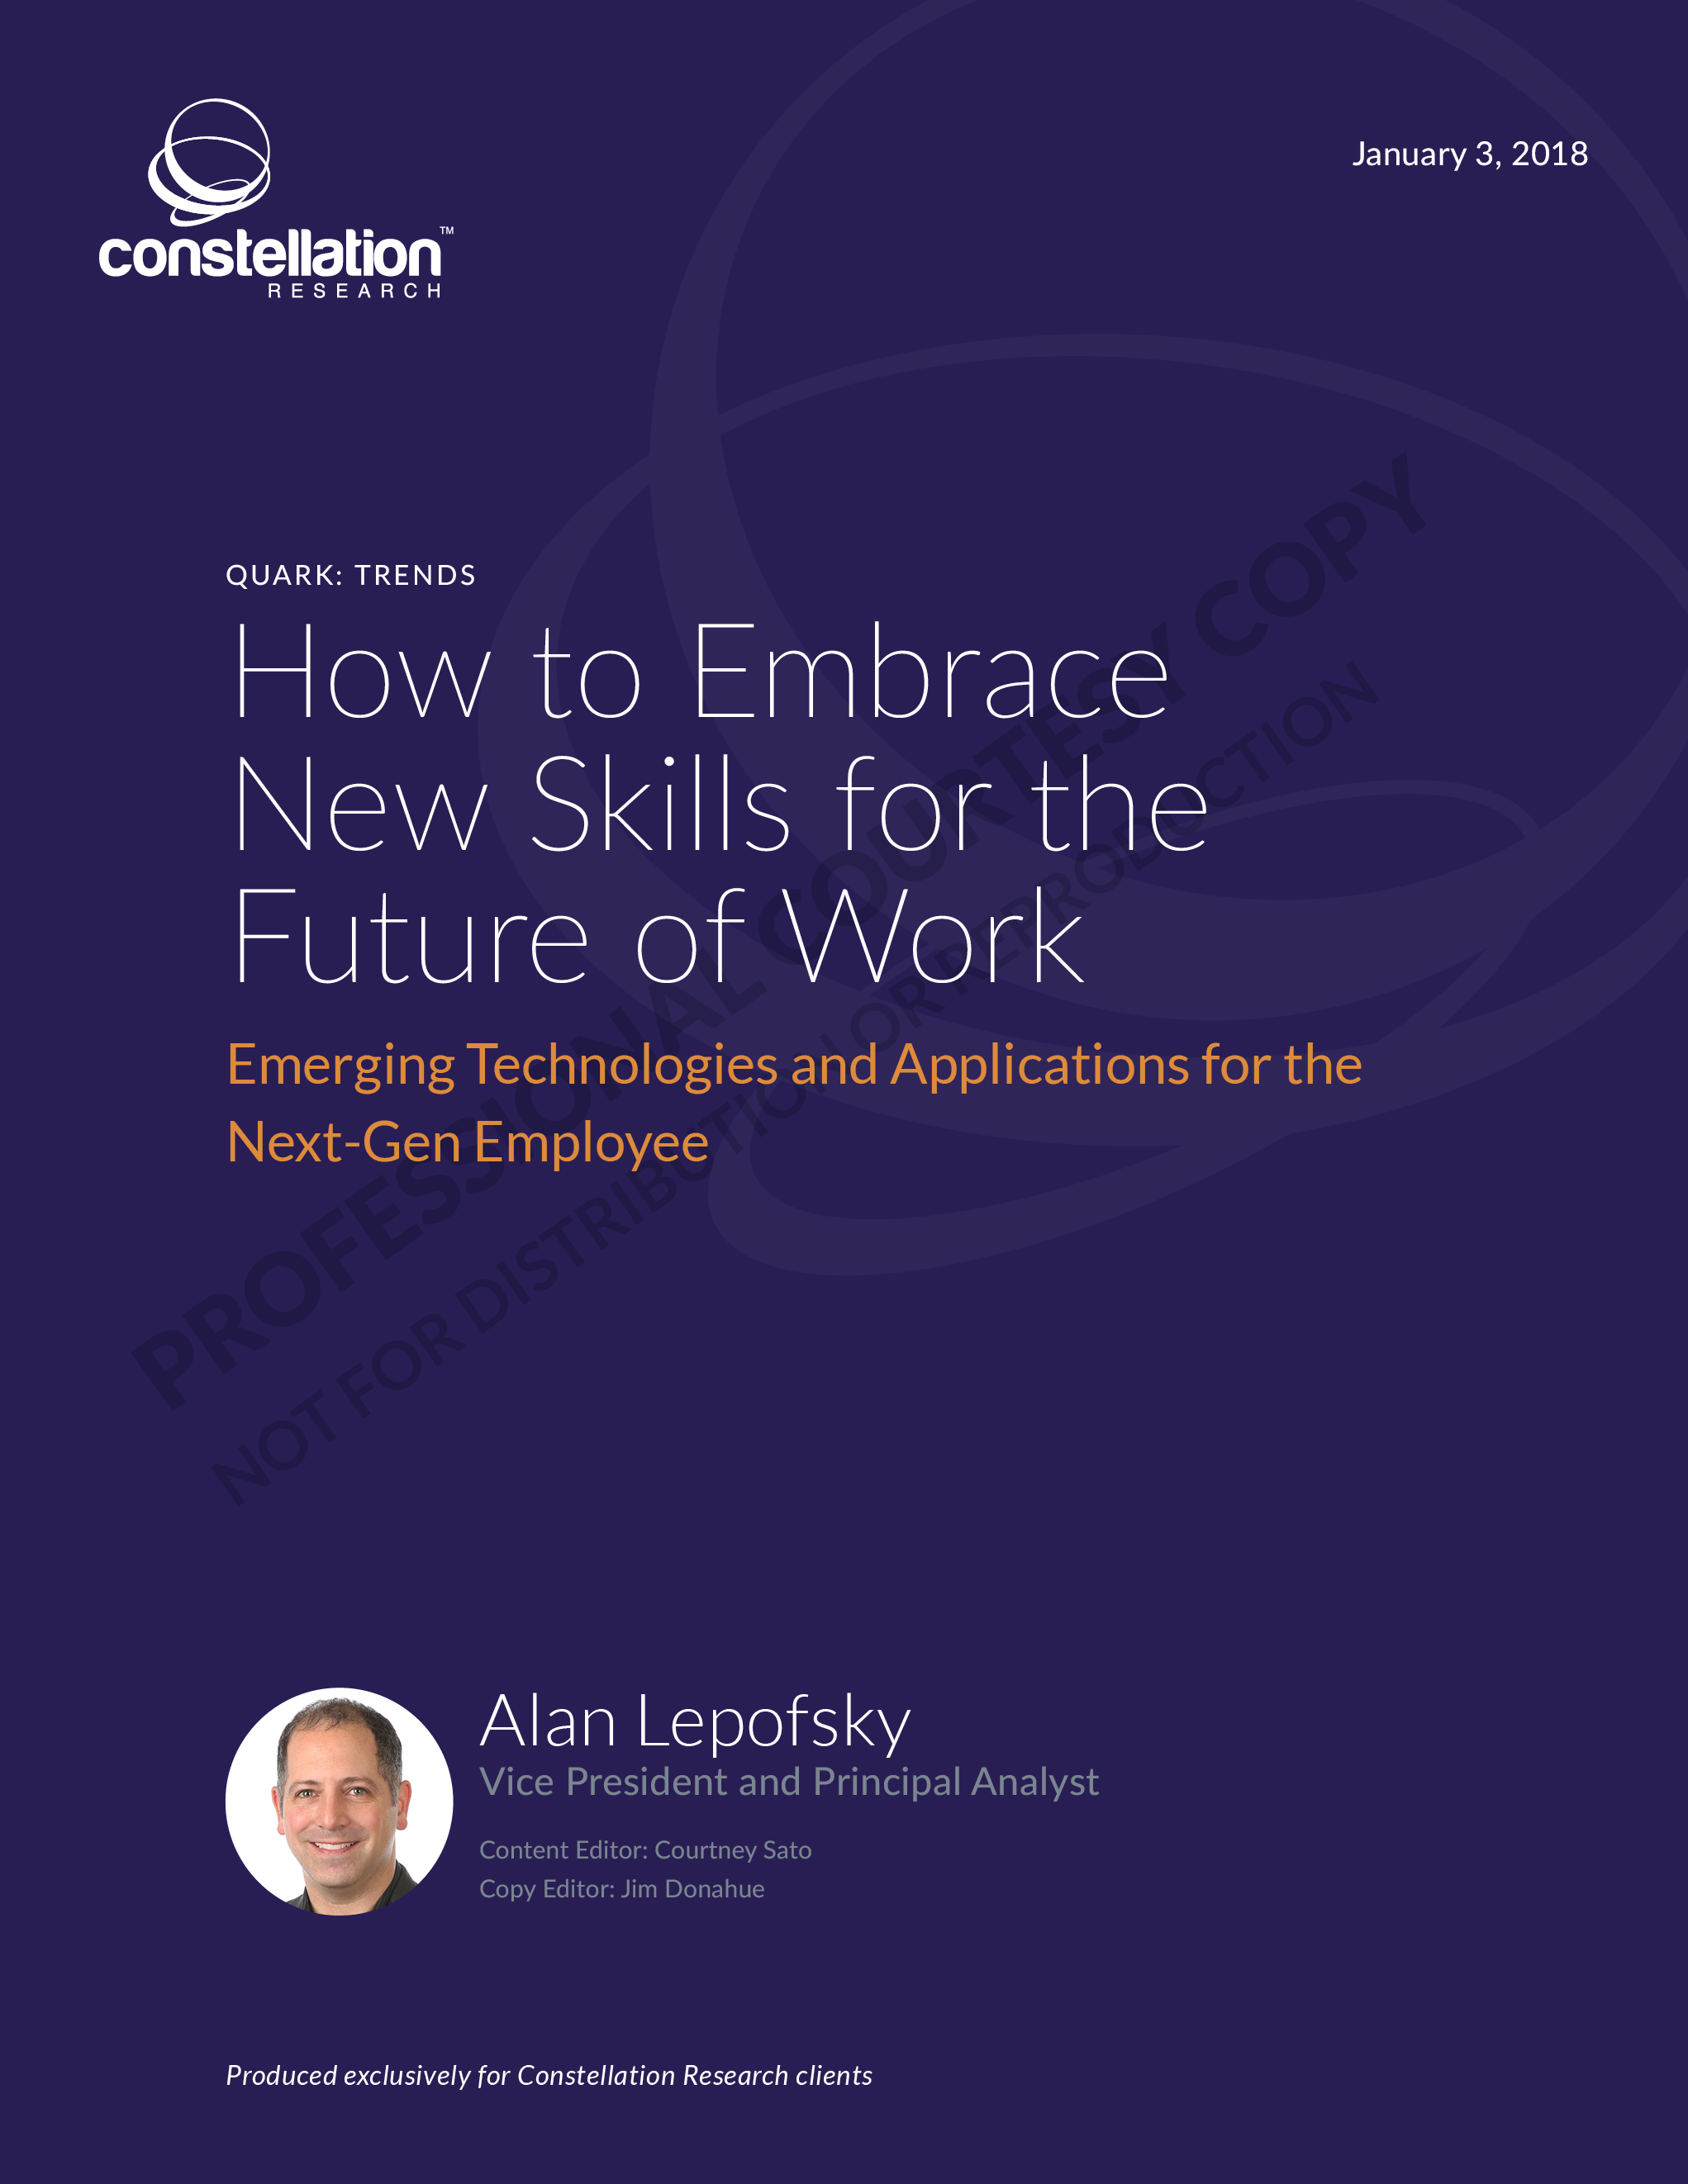 How to Embrace New Skills for the Future of Work